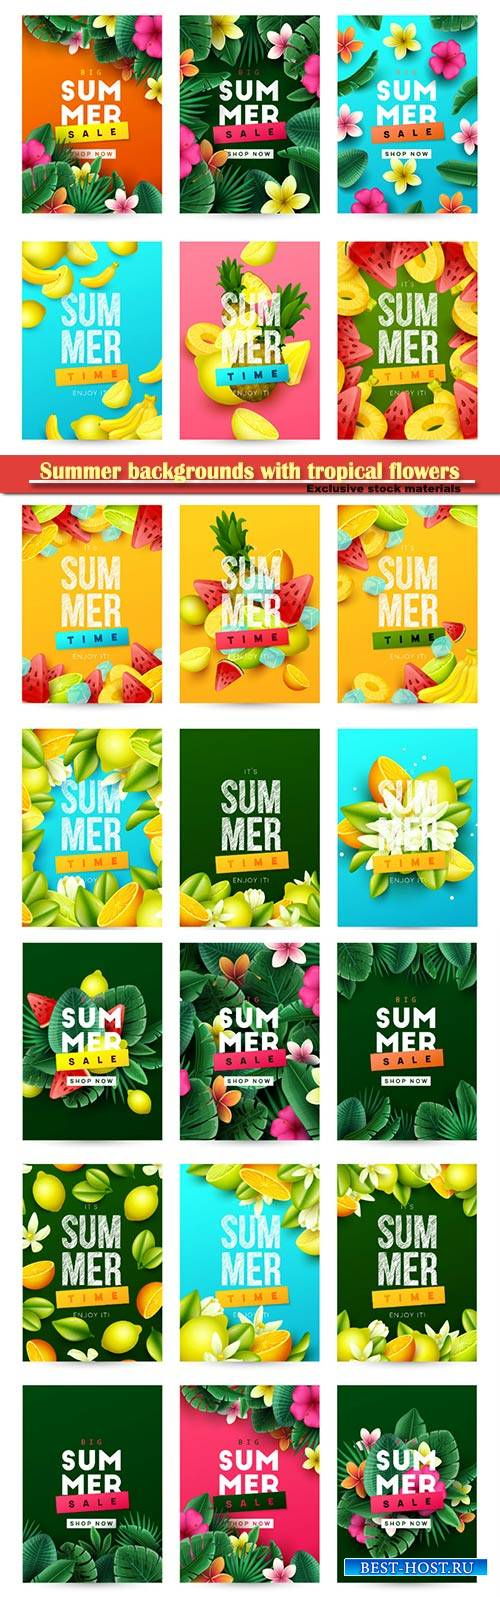 Summer backgrounds with tropical flowers and palm leaves